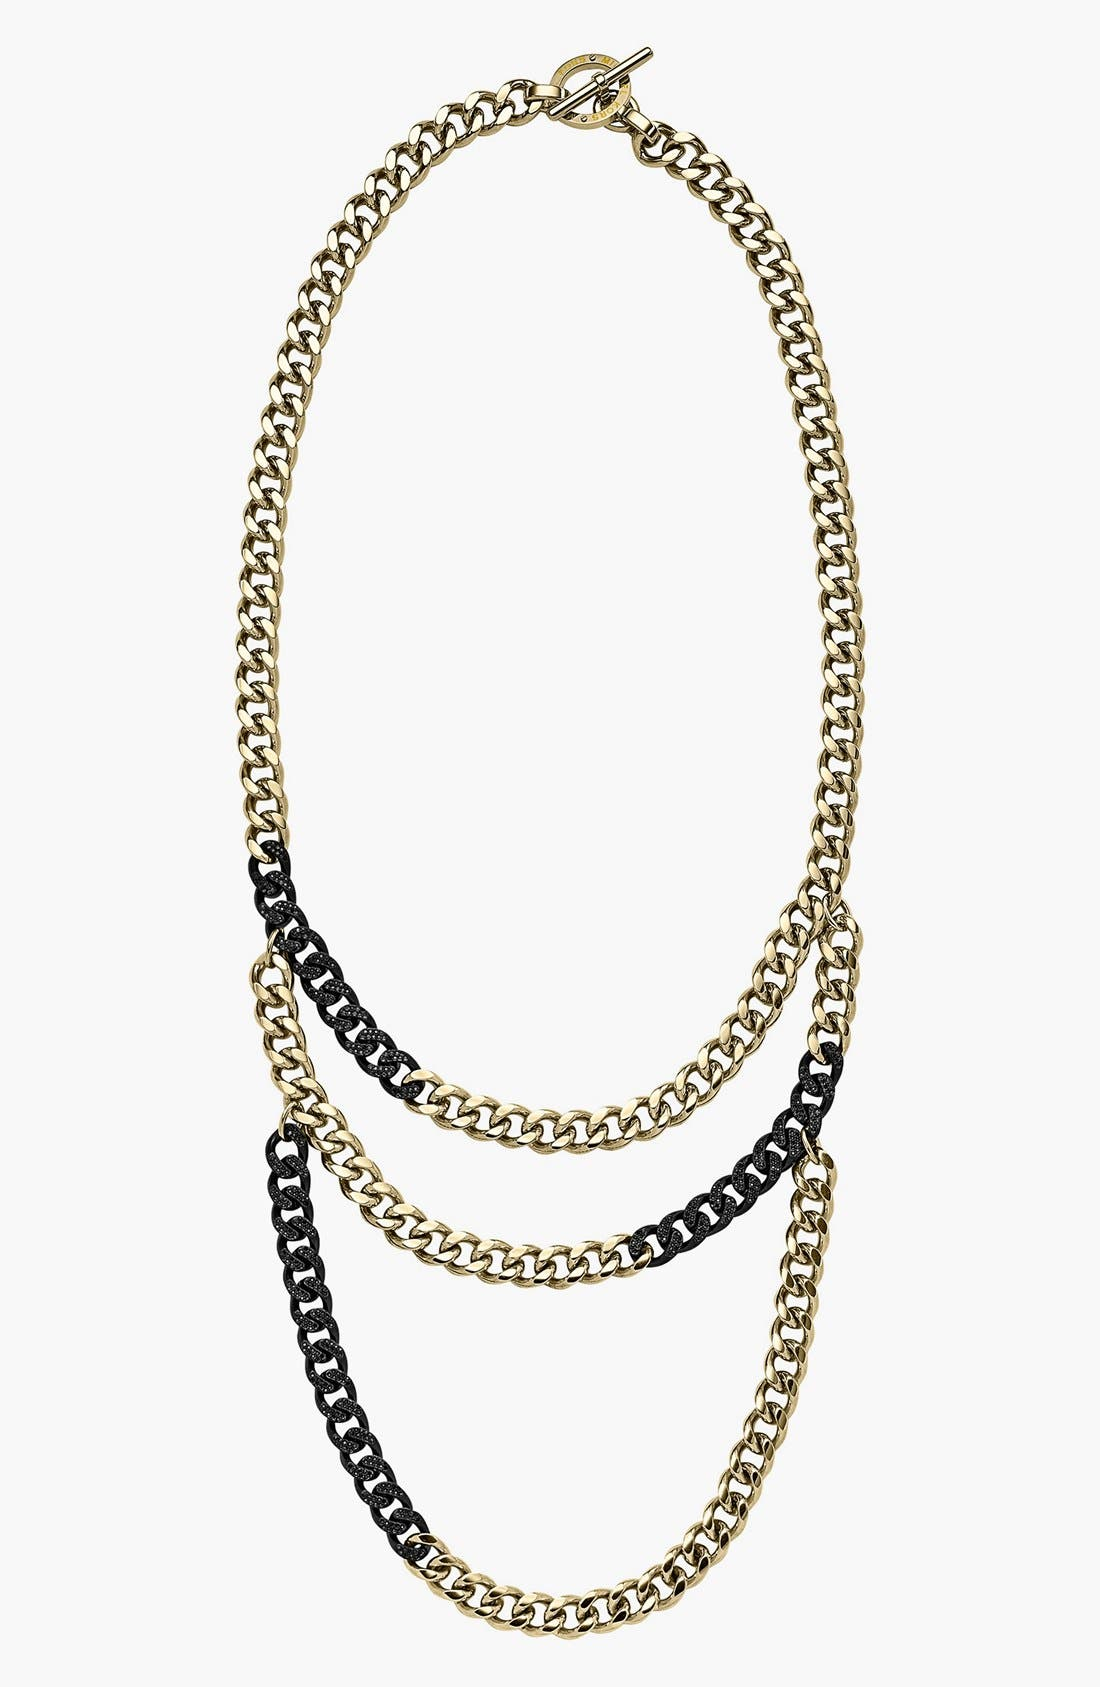 Main Image - Michael Kors Two-Tone Curb Link Necklace